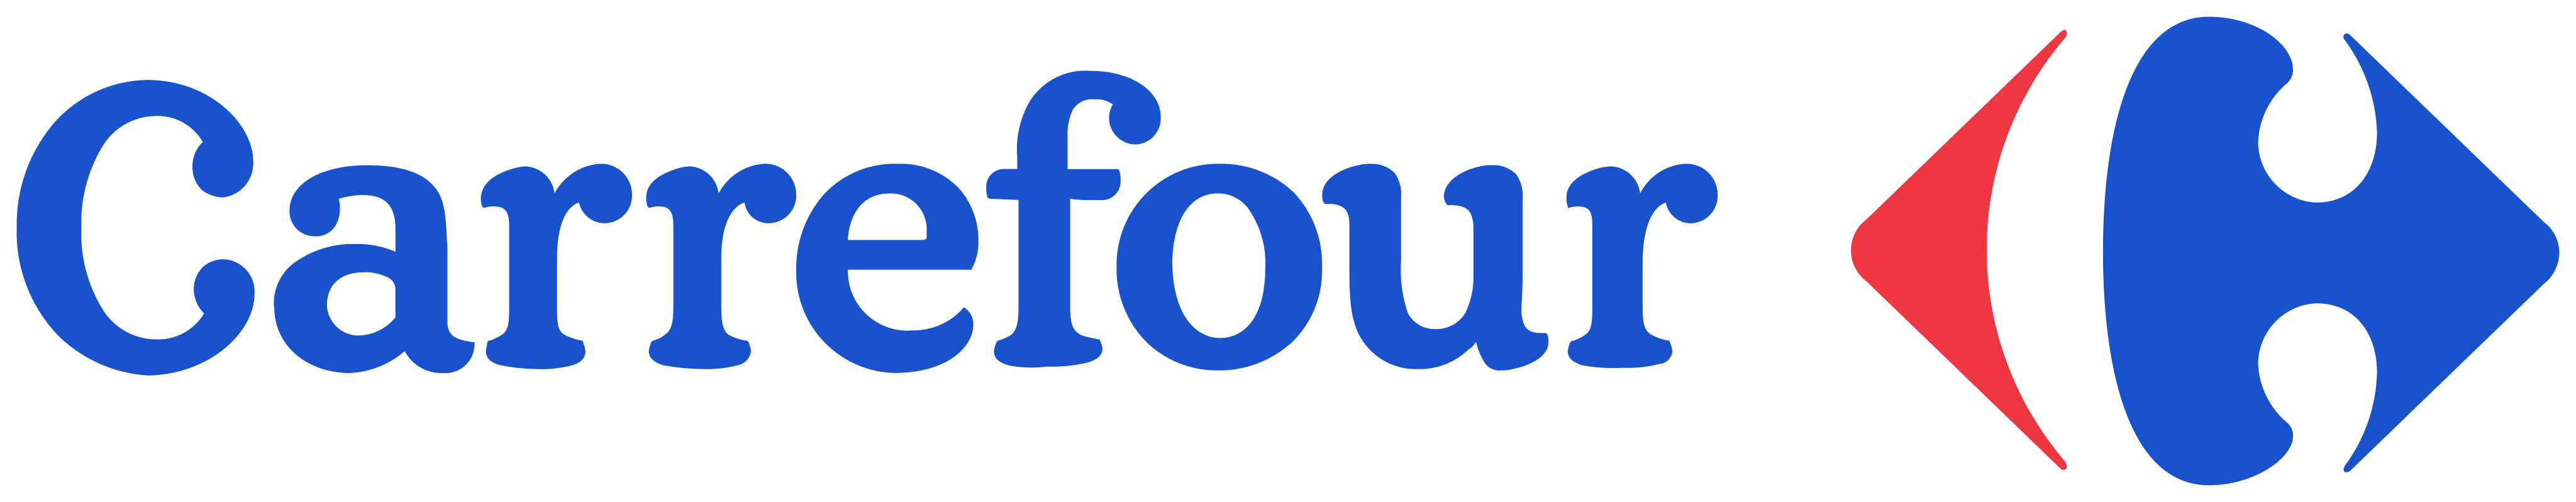 Carrefour Logo - Png And Vector - Logo Download - Carrefour Logo PNG